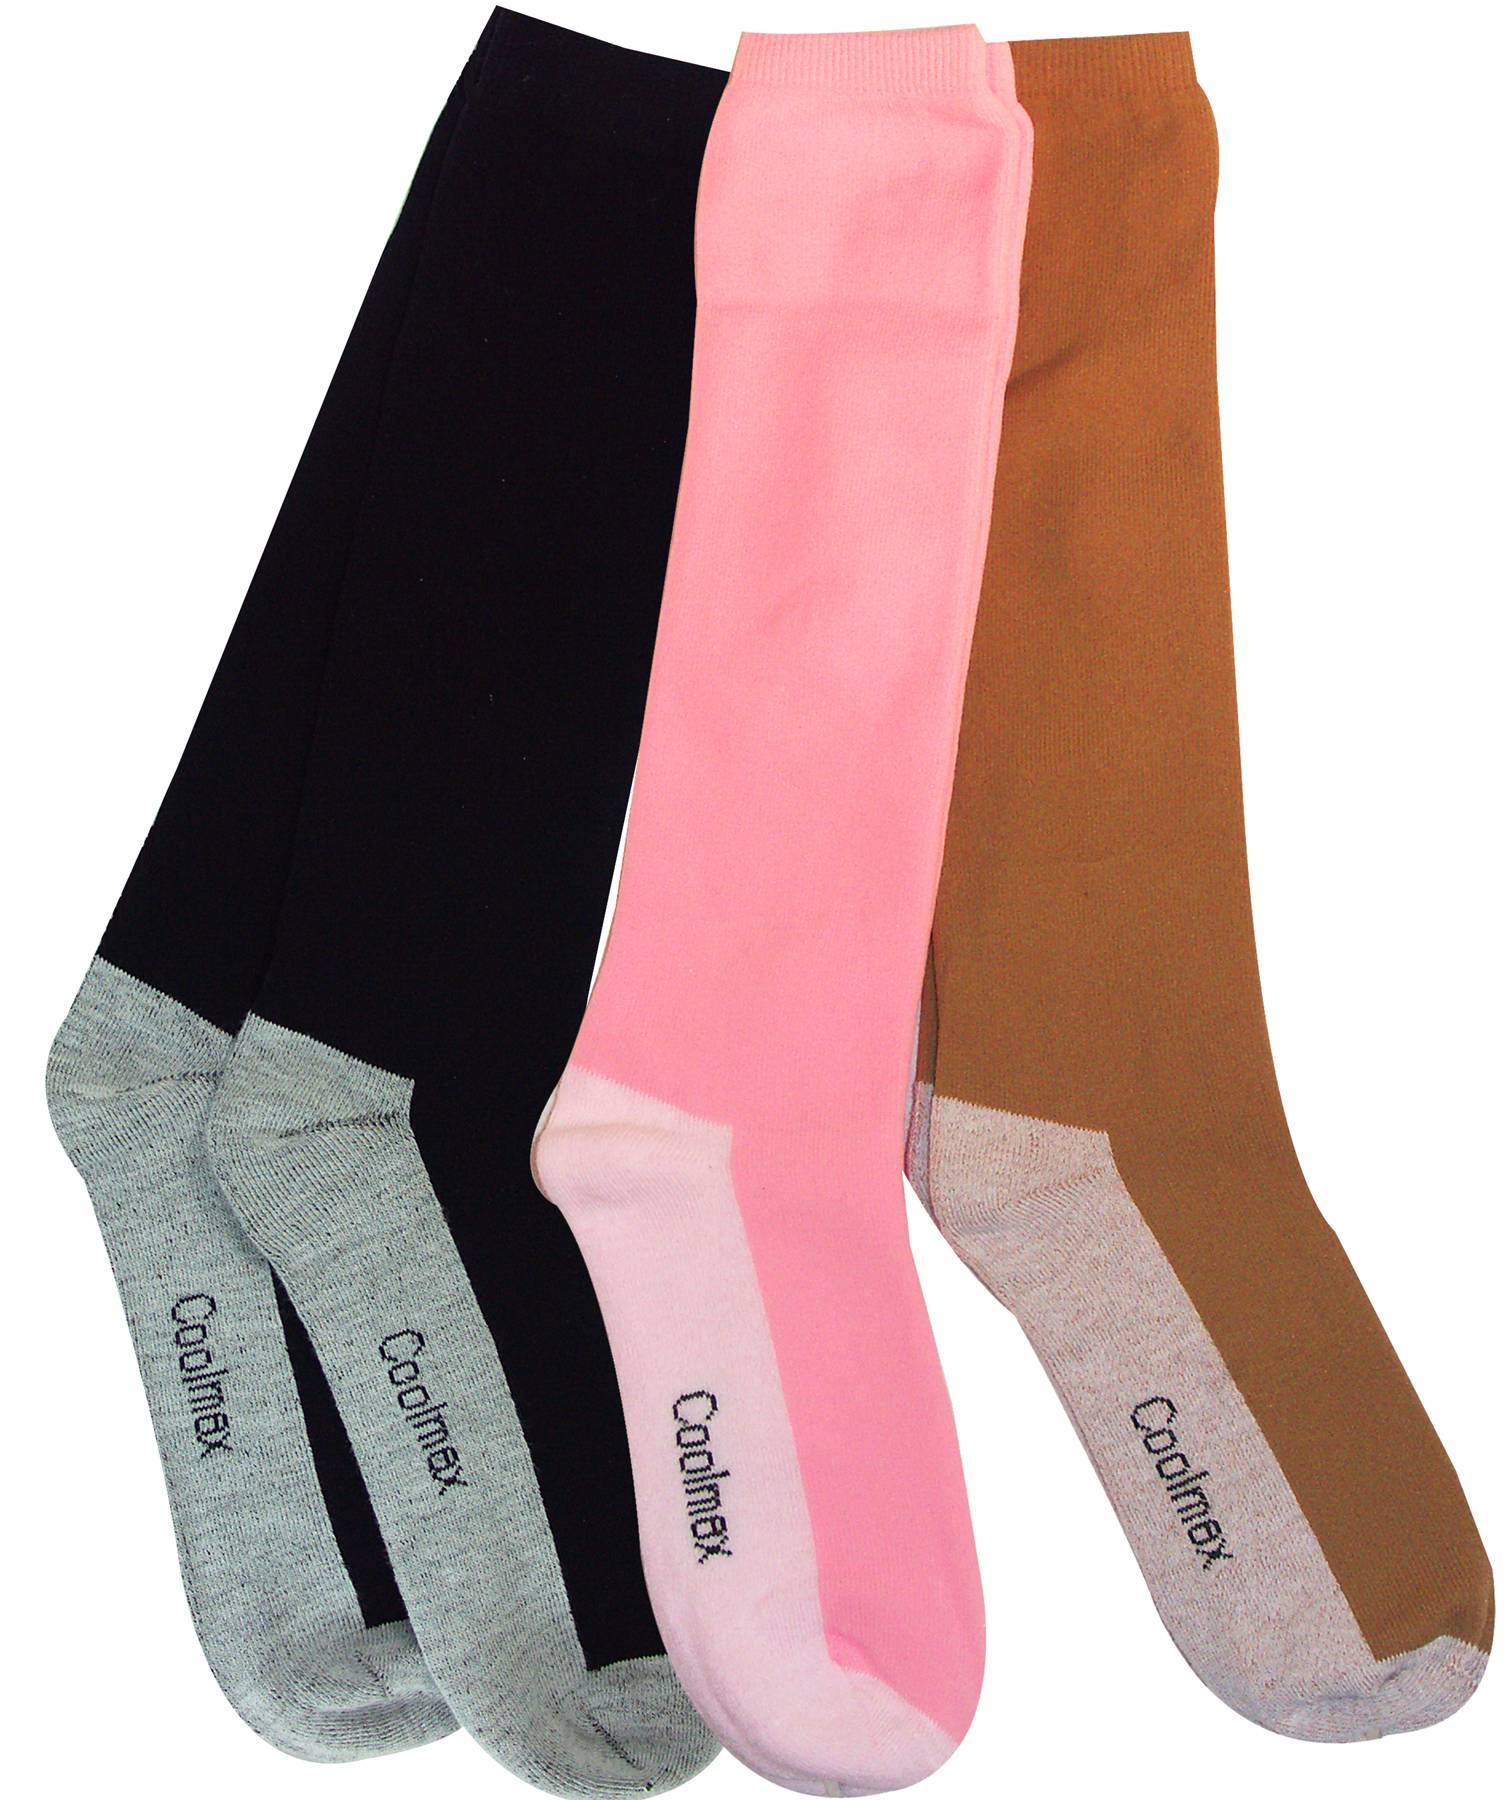 Coolmax Ladies' Boot Socks